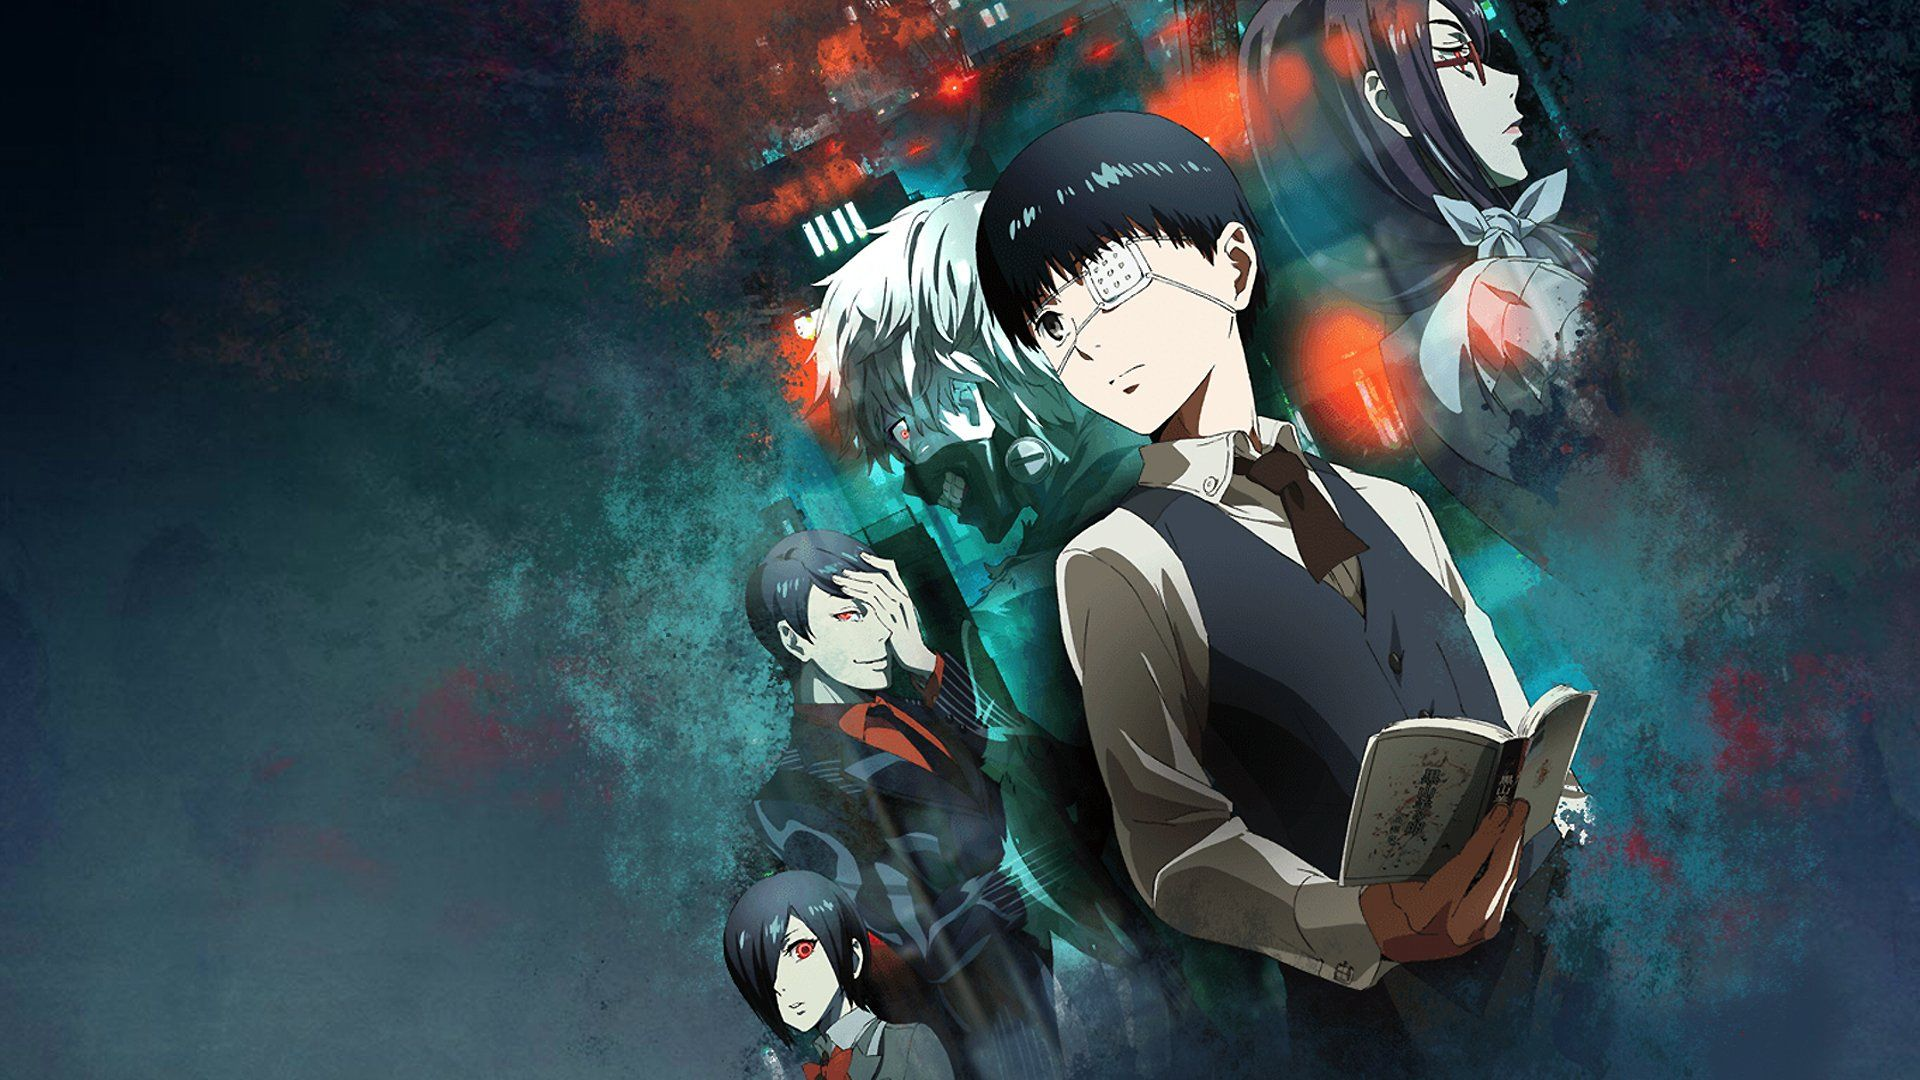 Tokyo Ghoul Characters Hd Wallpapers Top Free Tokyo Ghoul Characters Hd Backgrounds Wallpaperaccess